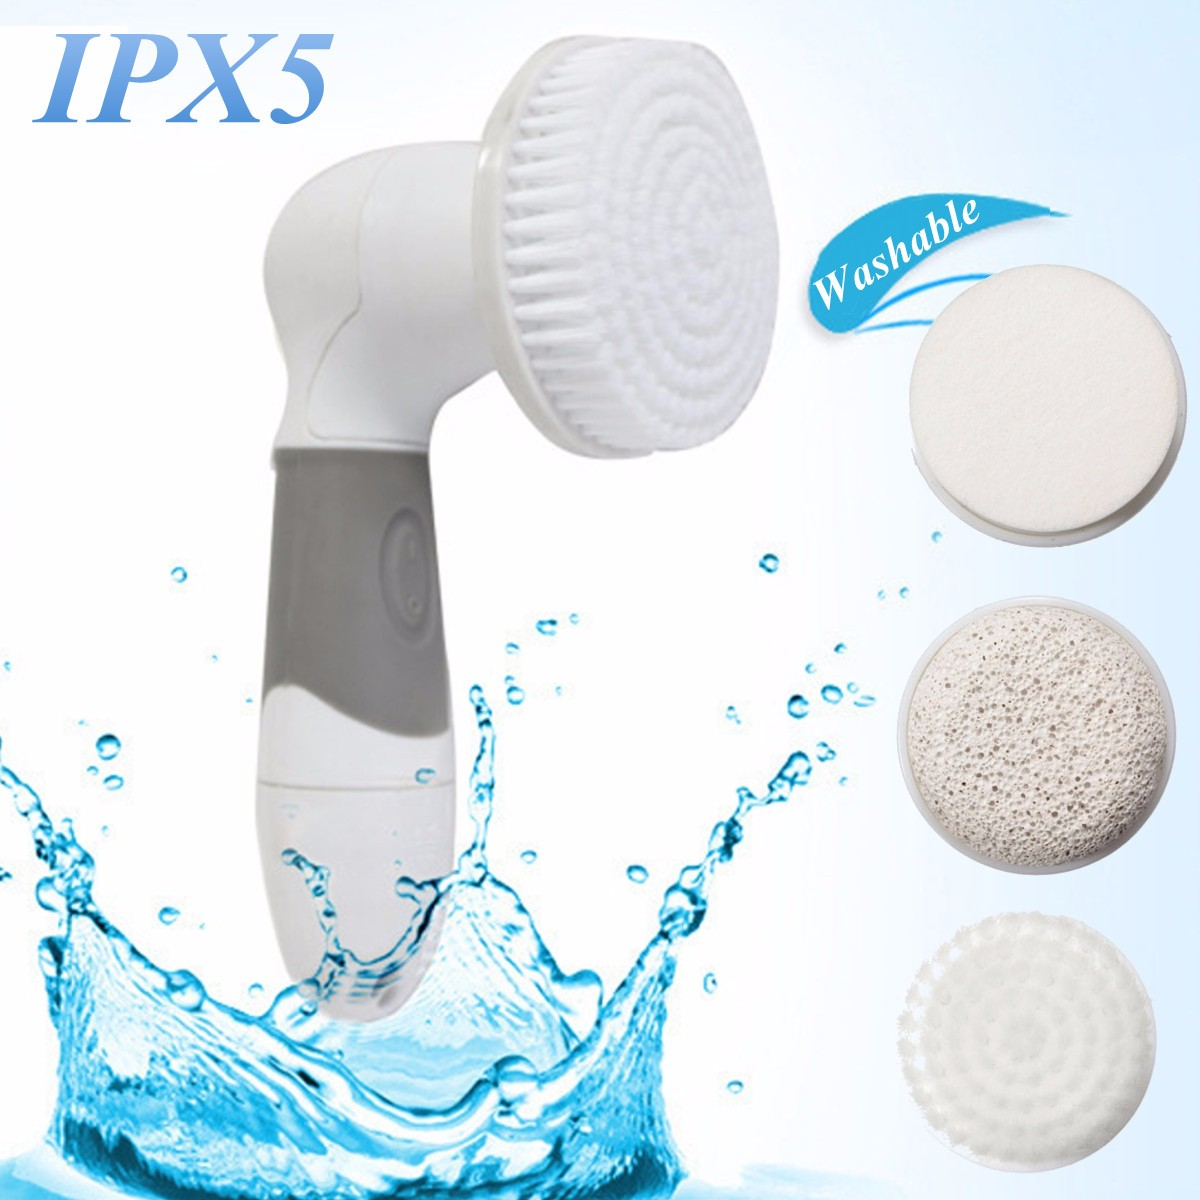 4in1 Electric Facial Cleaner Face Cleaning Skin Care Brush Massager Scrubber Dead Skin Remover Tool